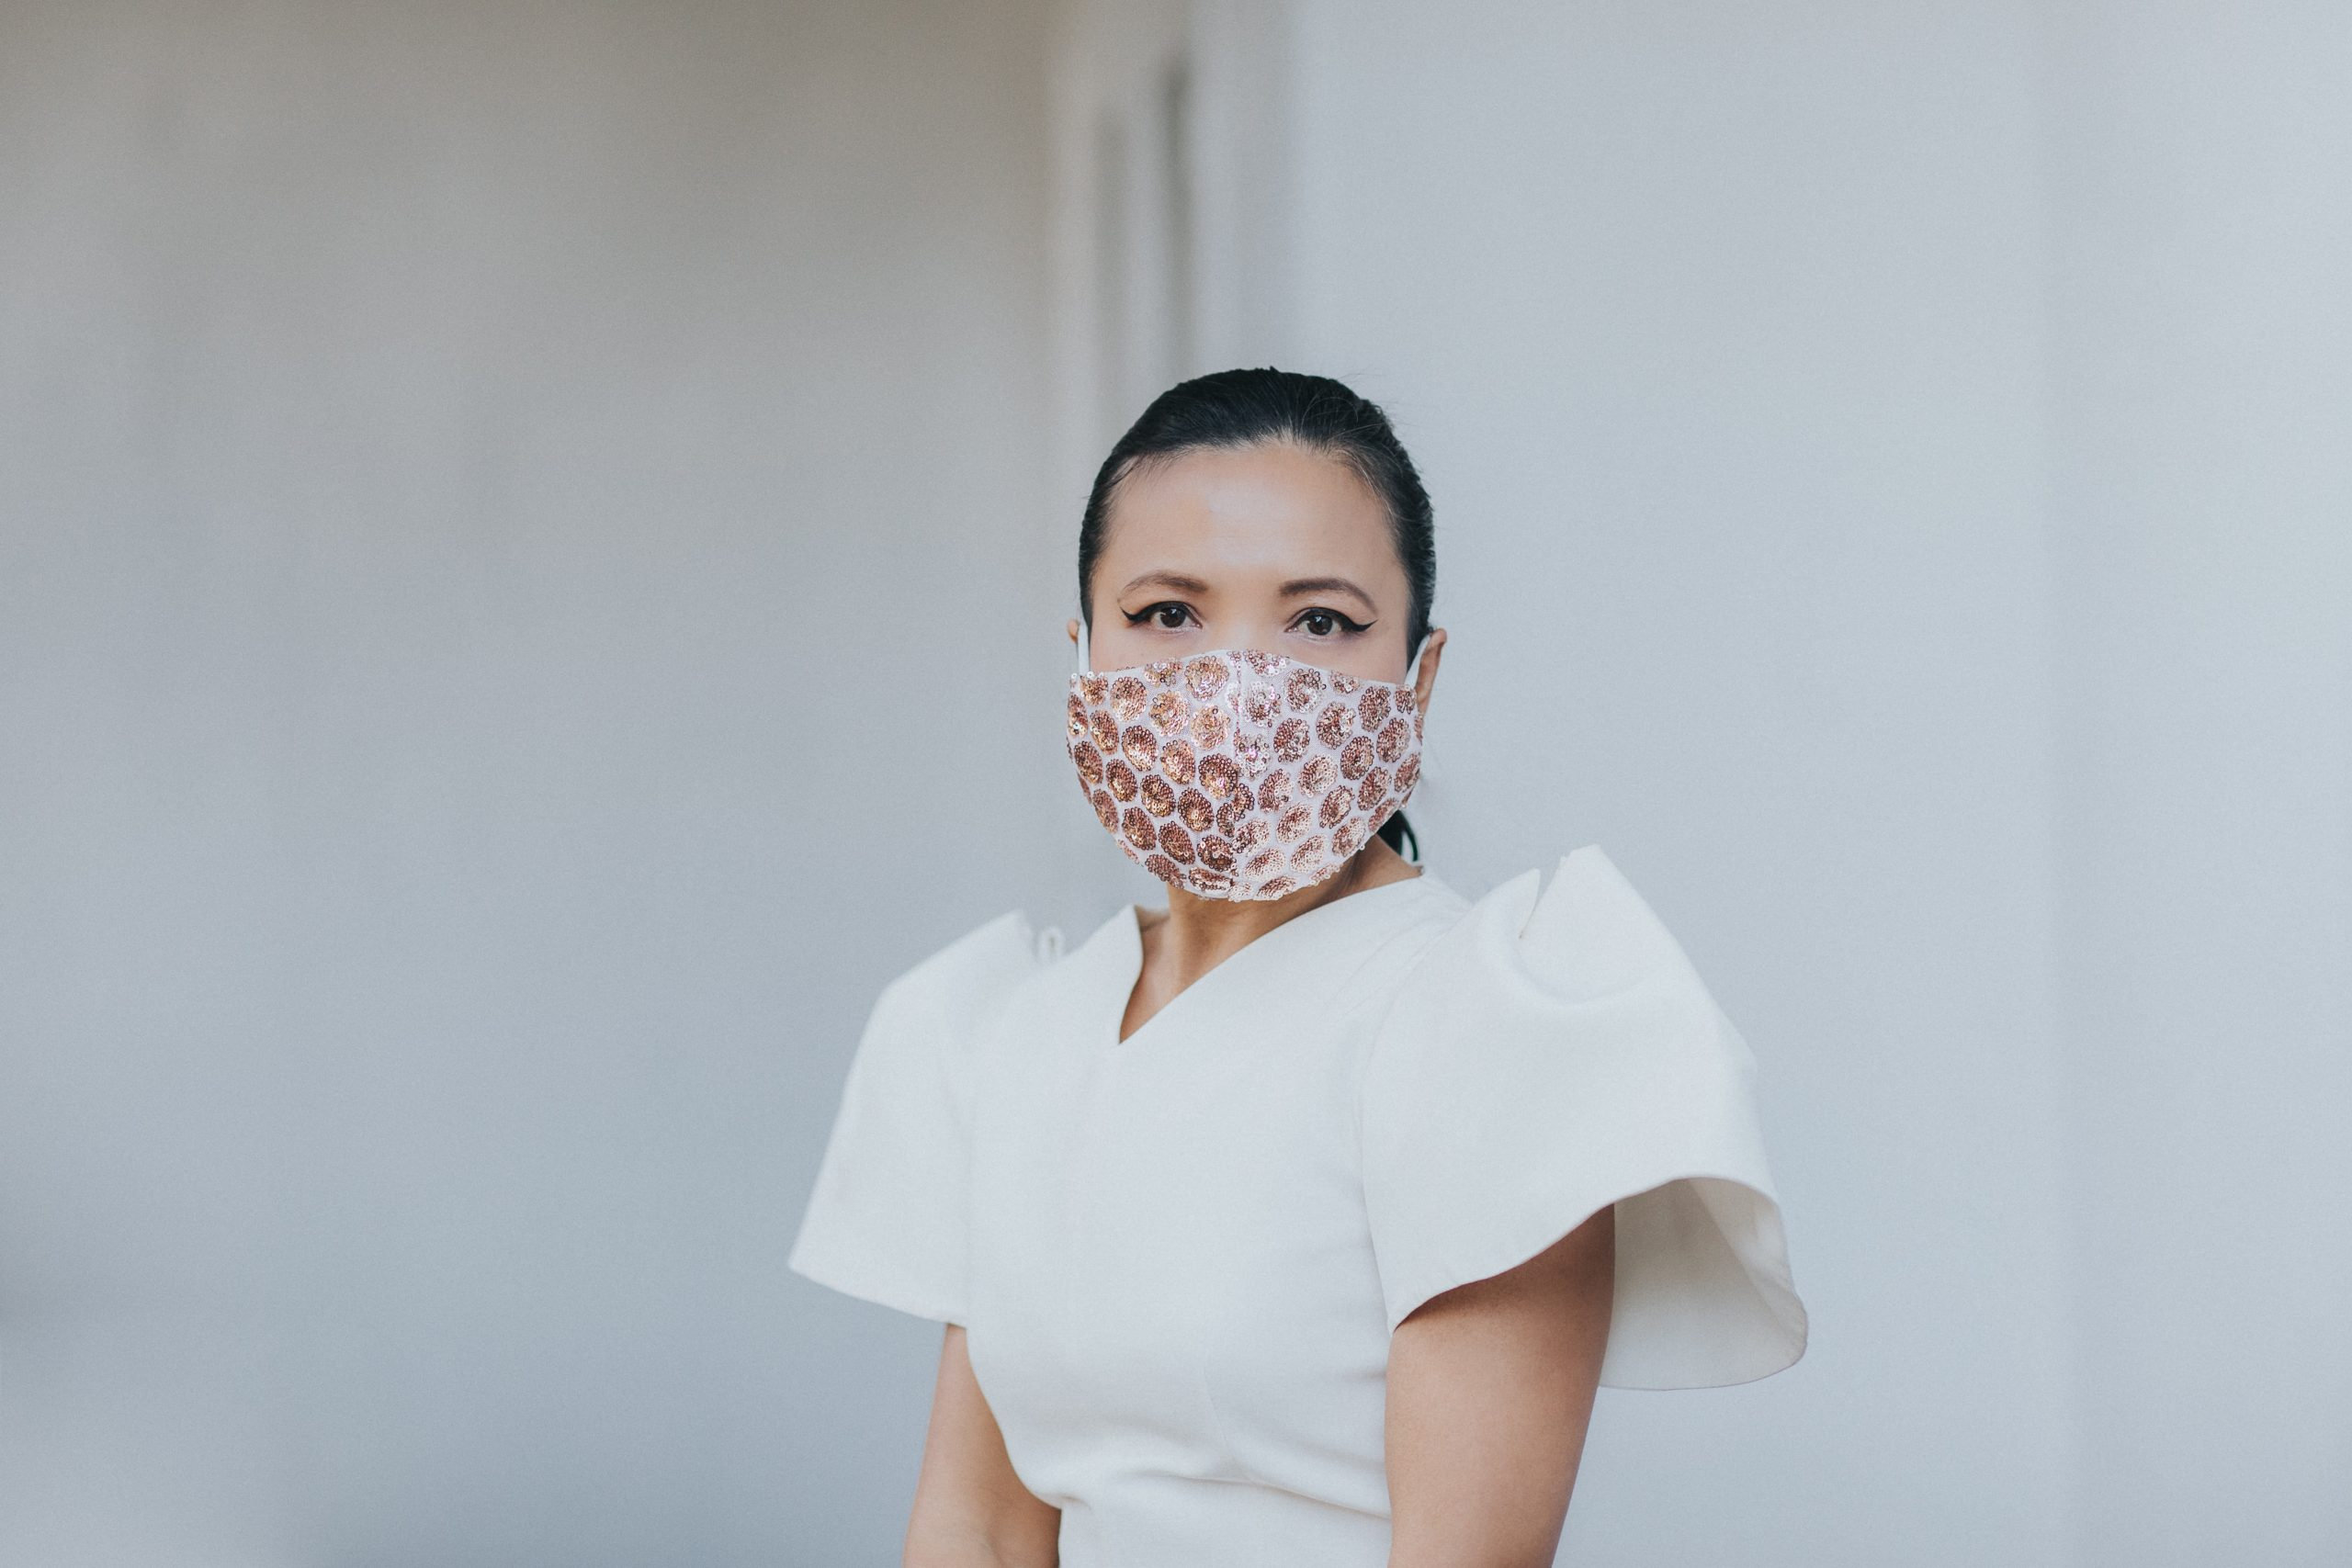 What protection do antimicrobial face coverings offer against COVID-19?